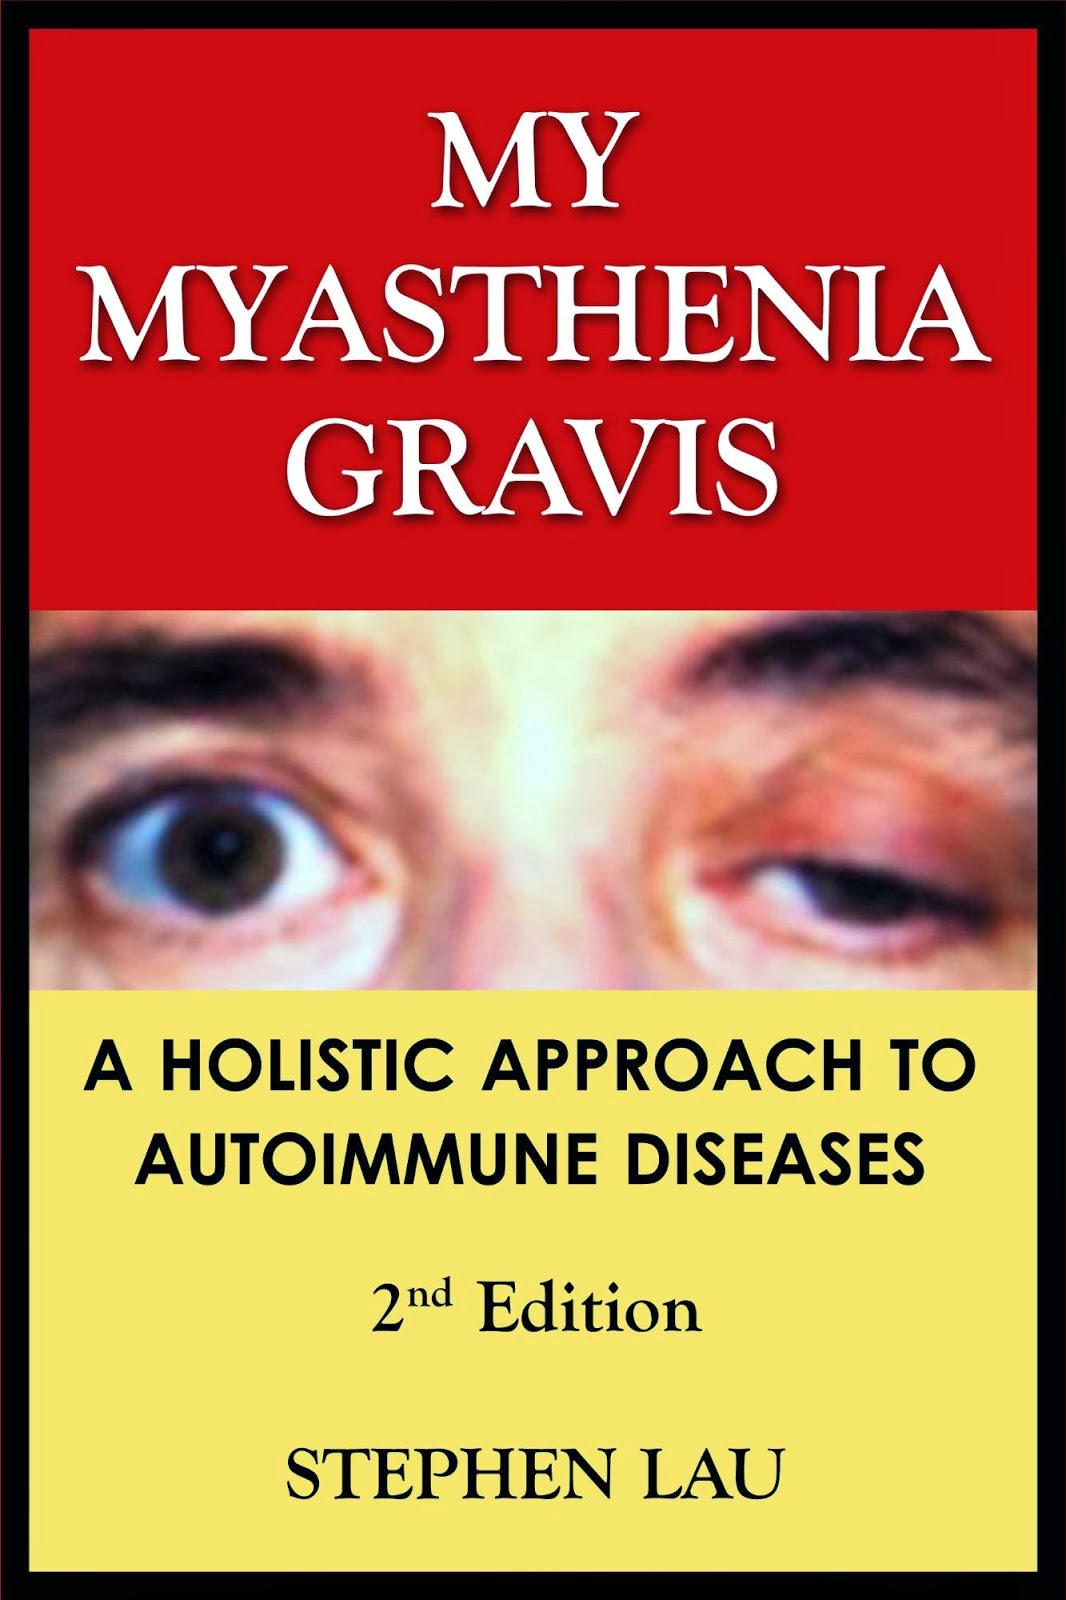 <b>My Myasthenia Gravis</b> - 2nd Edition